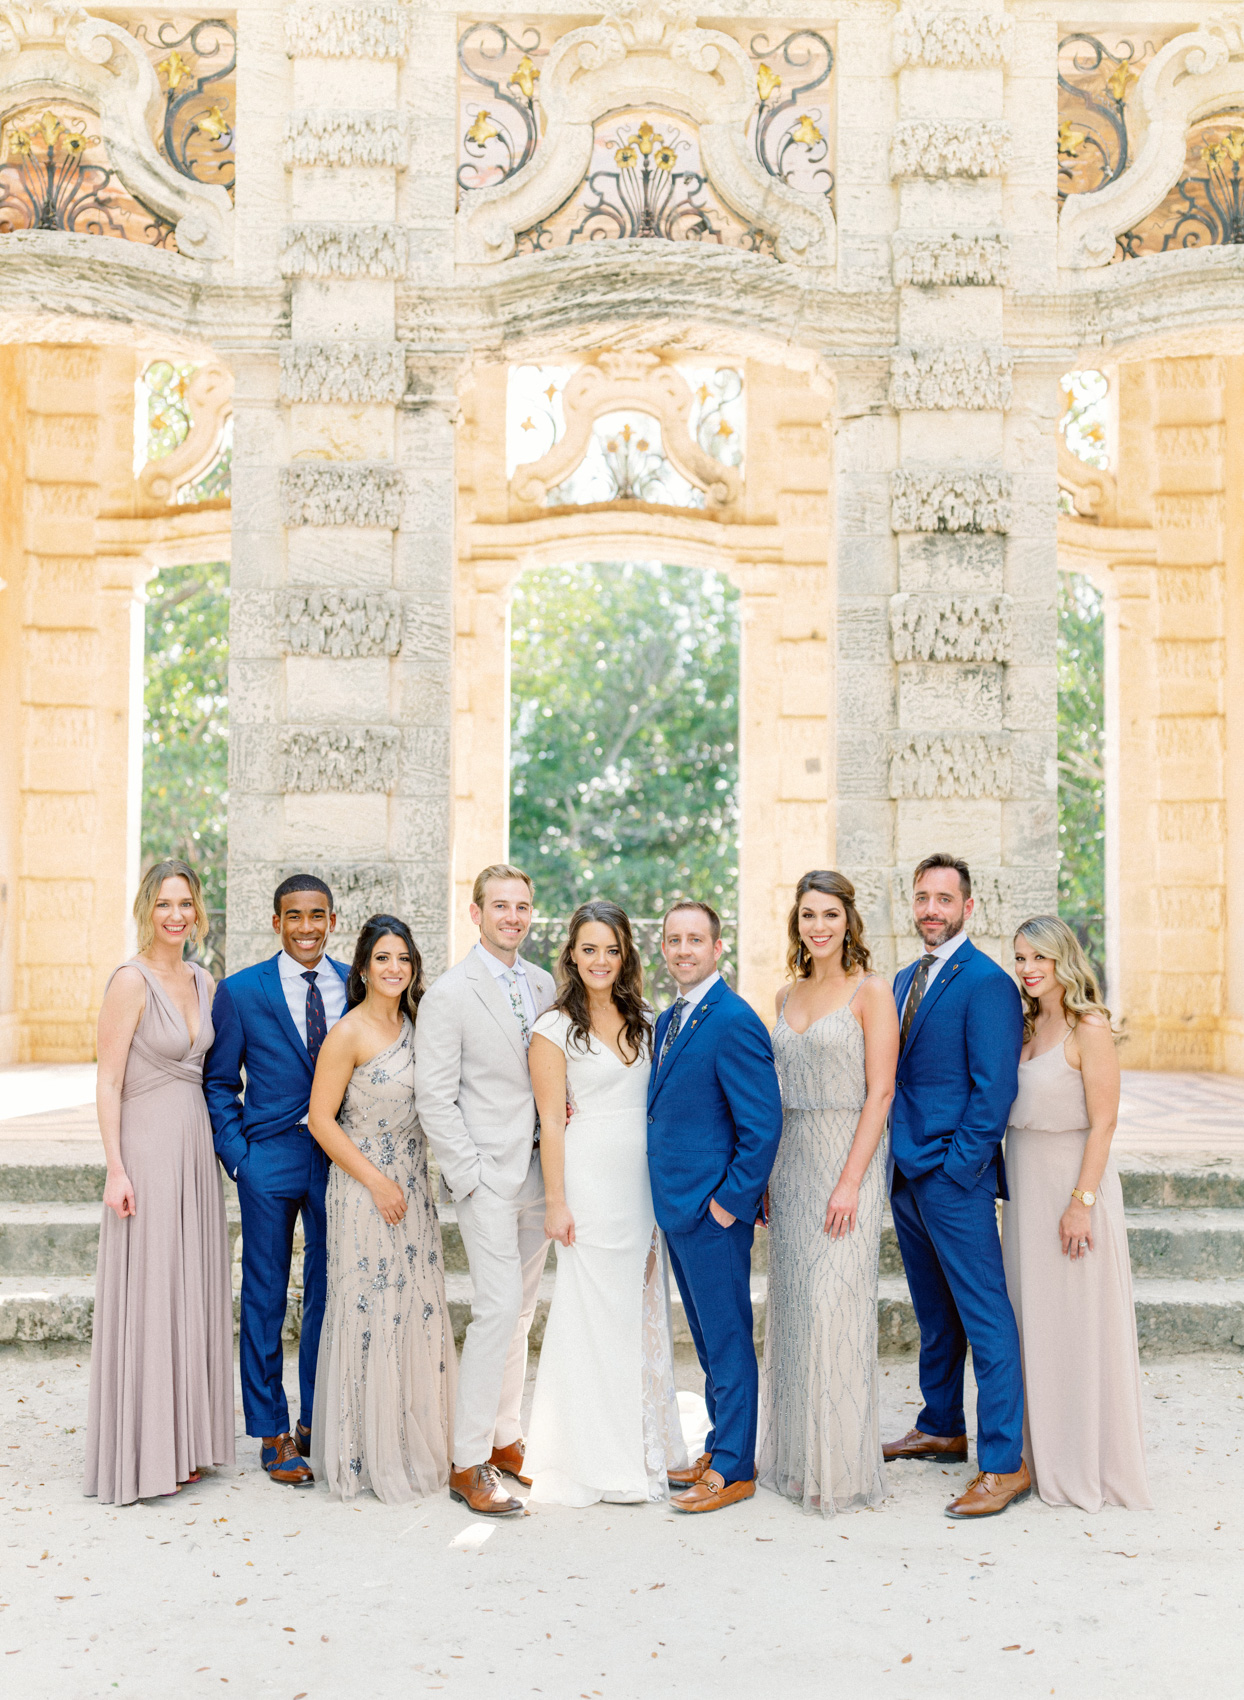 wedding party in blue and beige posing on stone steps